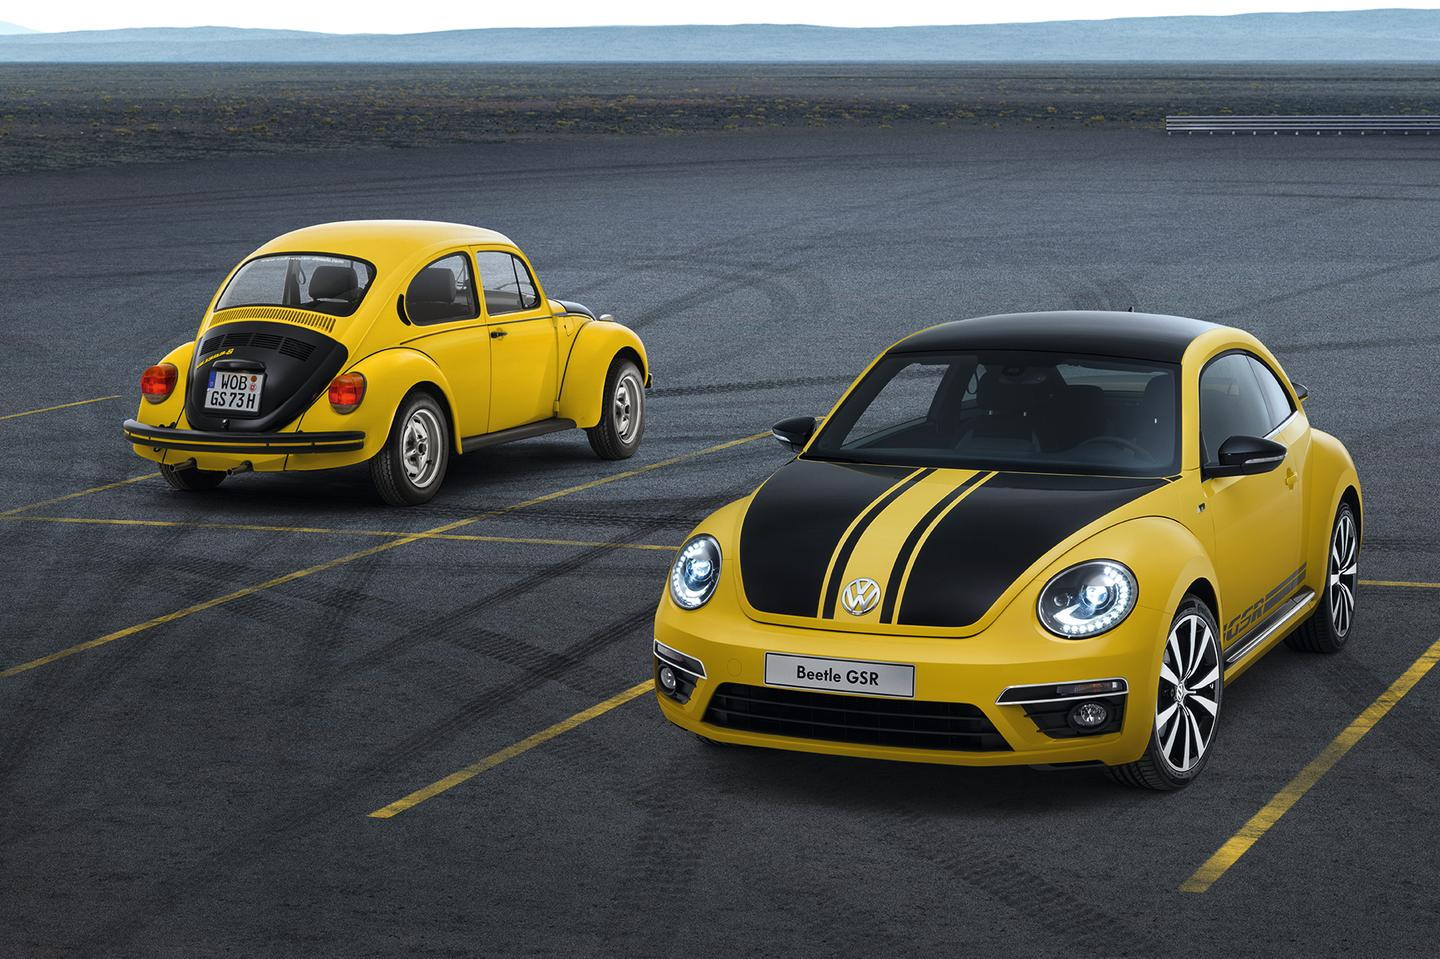 Volkswagen's new Beetle GSR - only 3,500 will be made worldwide